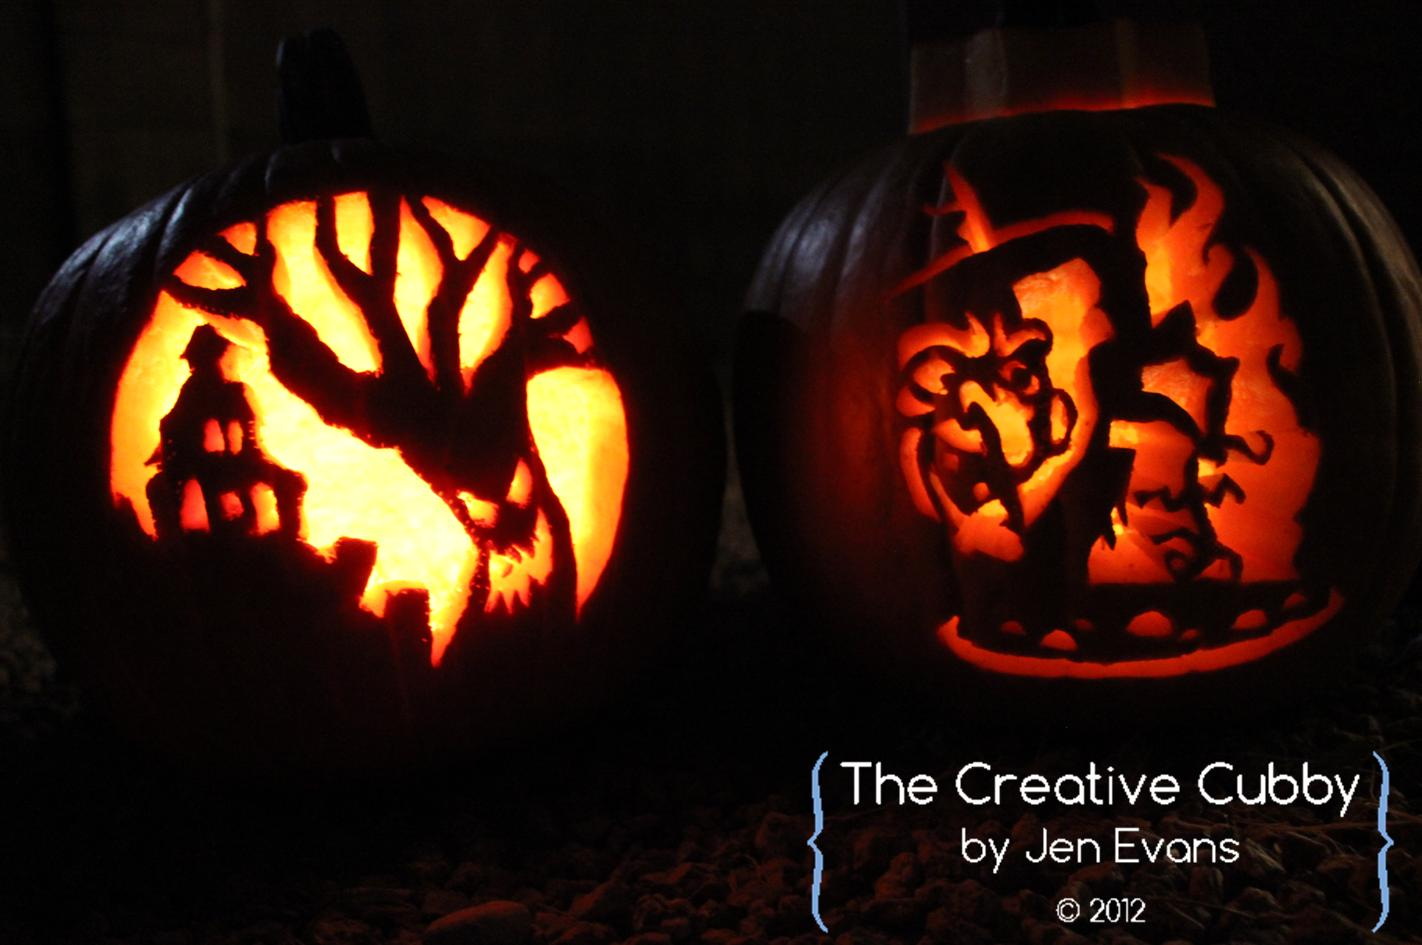 The creative cubby evans pumpkin carving 2012 Ideas for pumpkin carving templates